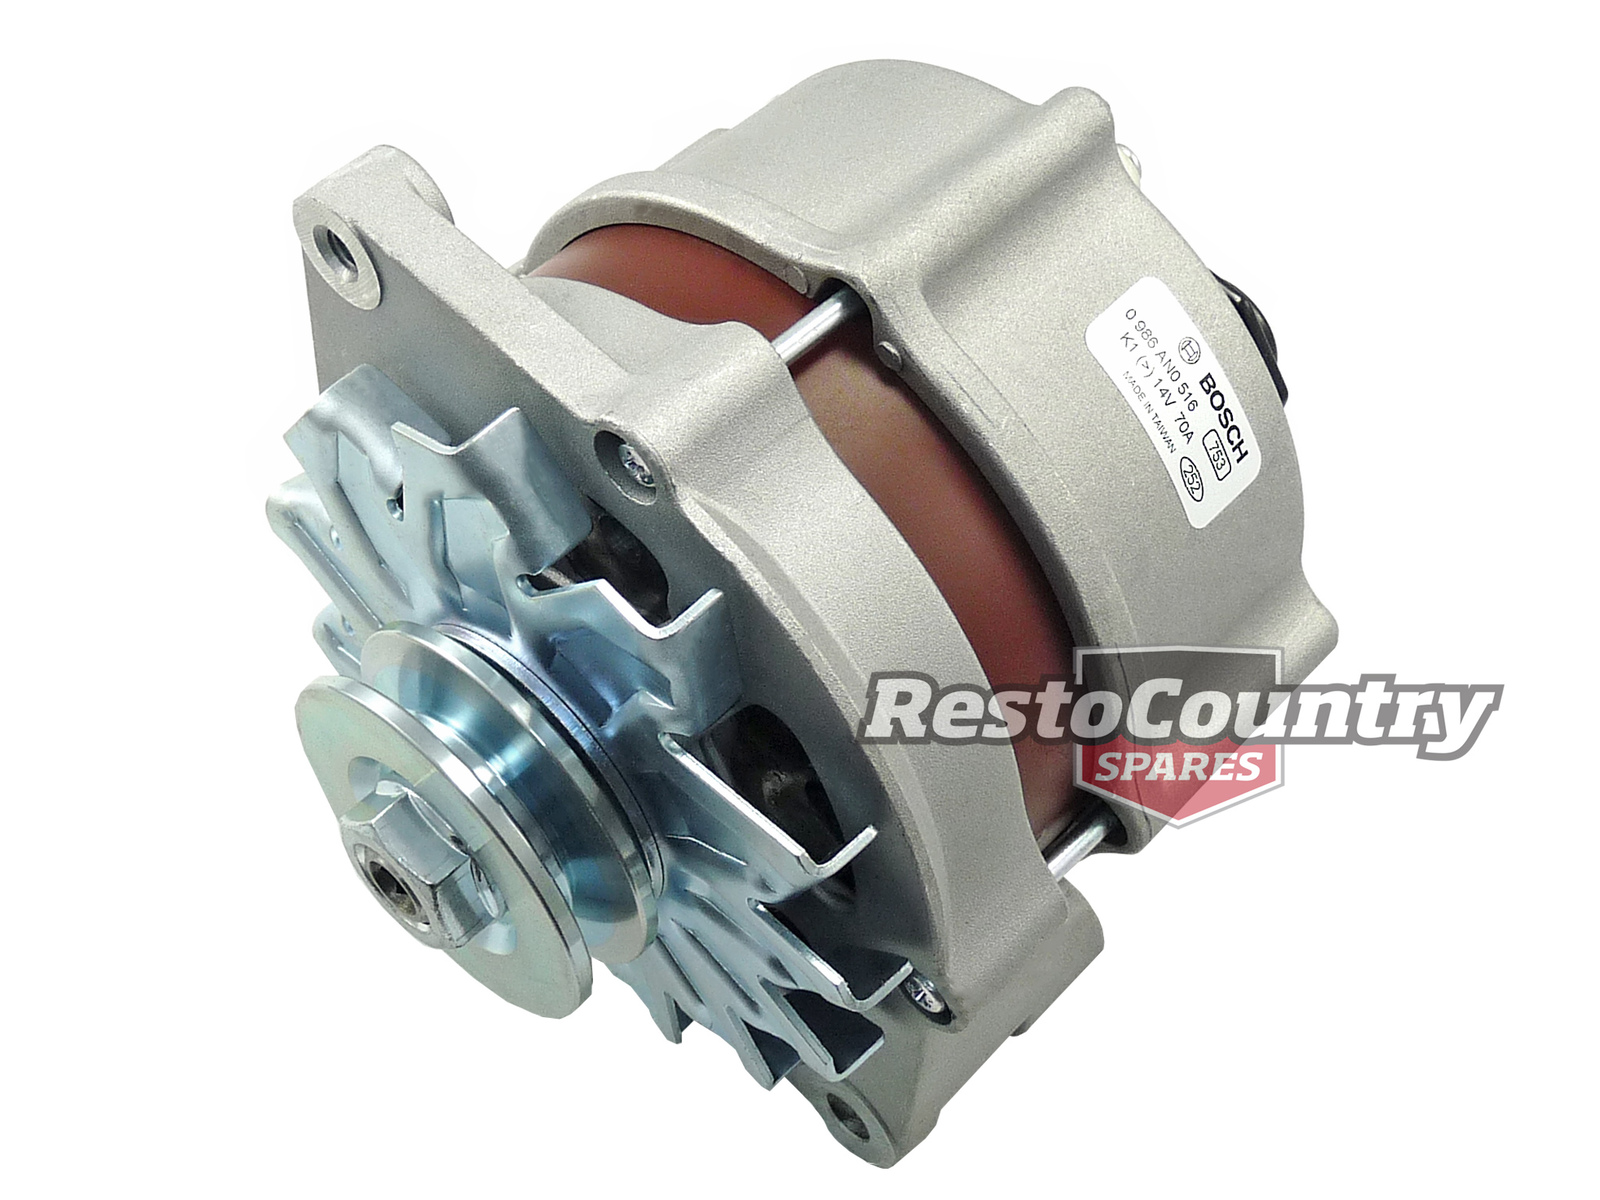 Bosch Alternator Wiring Diagram Holden : Holden bosch alternator a v or cyl internal regulator